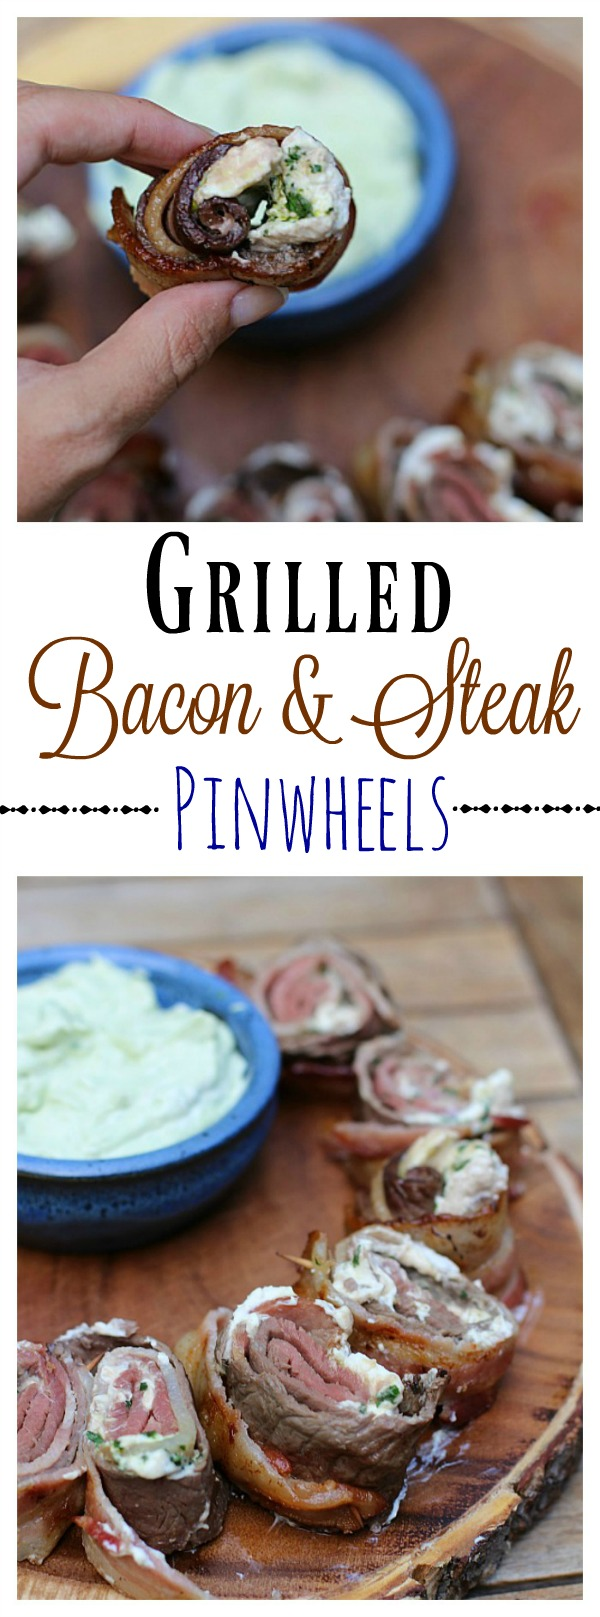 Grilled Bacon and Steak Pinwheels